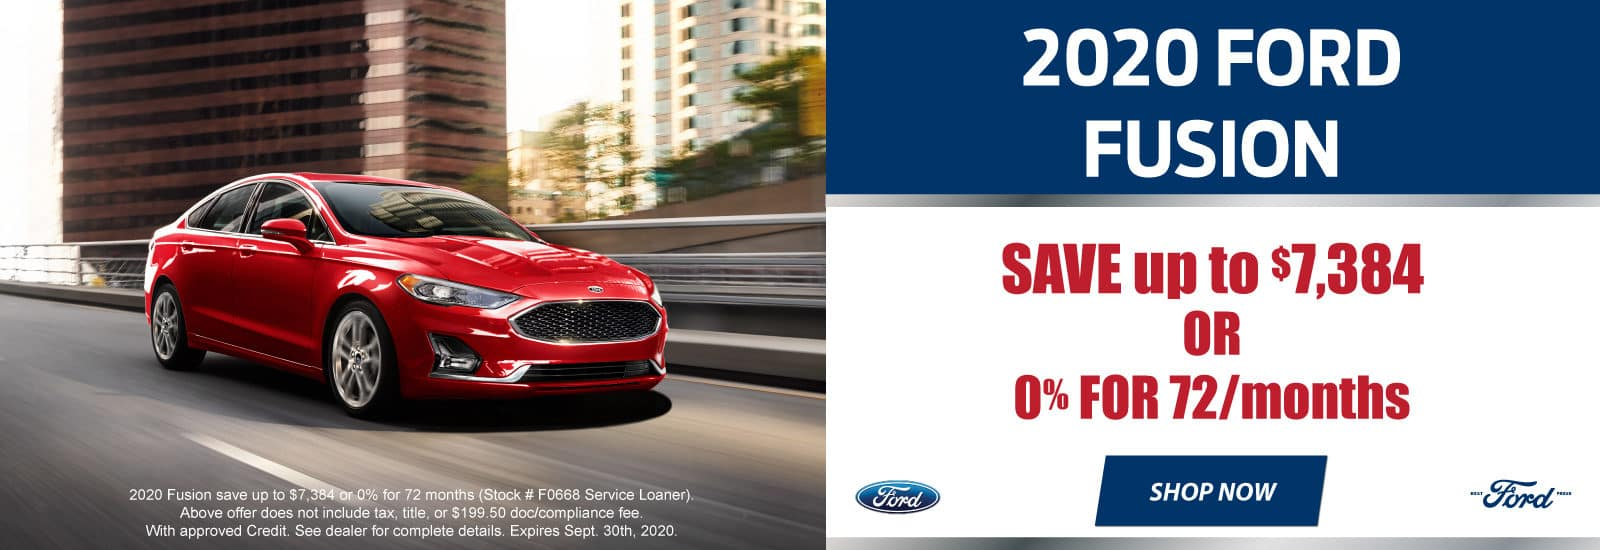 2020-Ford-Fusion-Web-Banner-1600×550